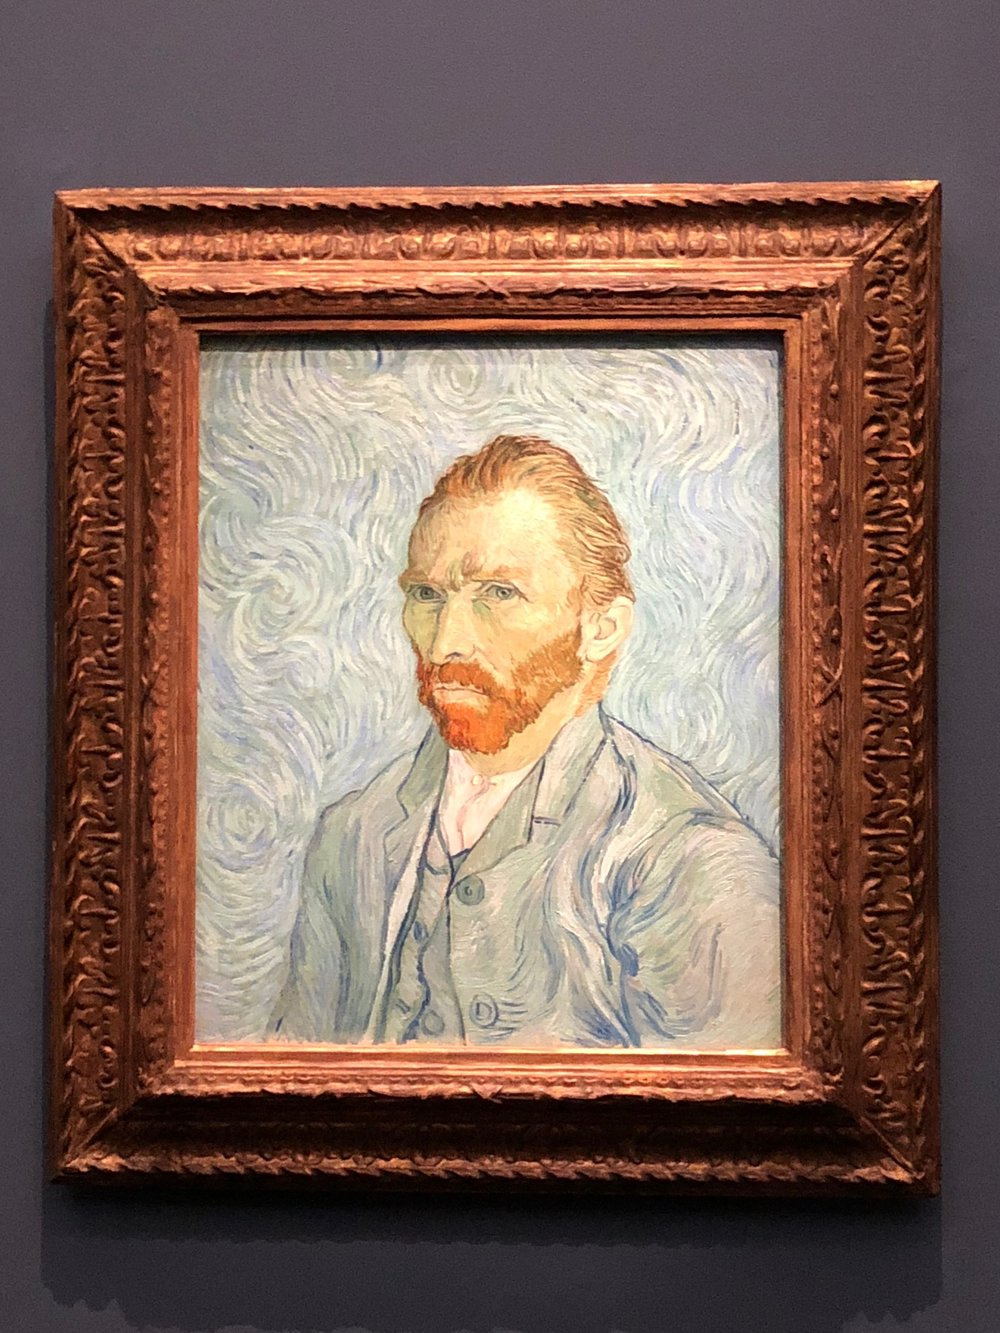 Van Gogh - Poor Guy